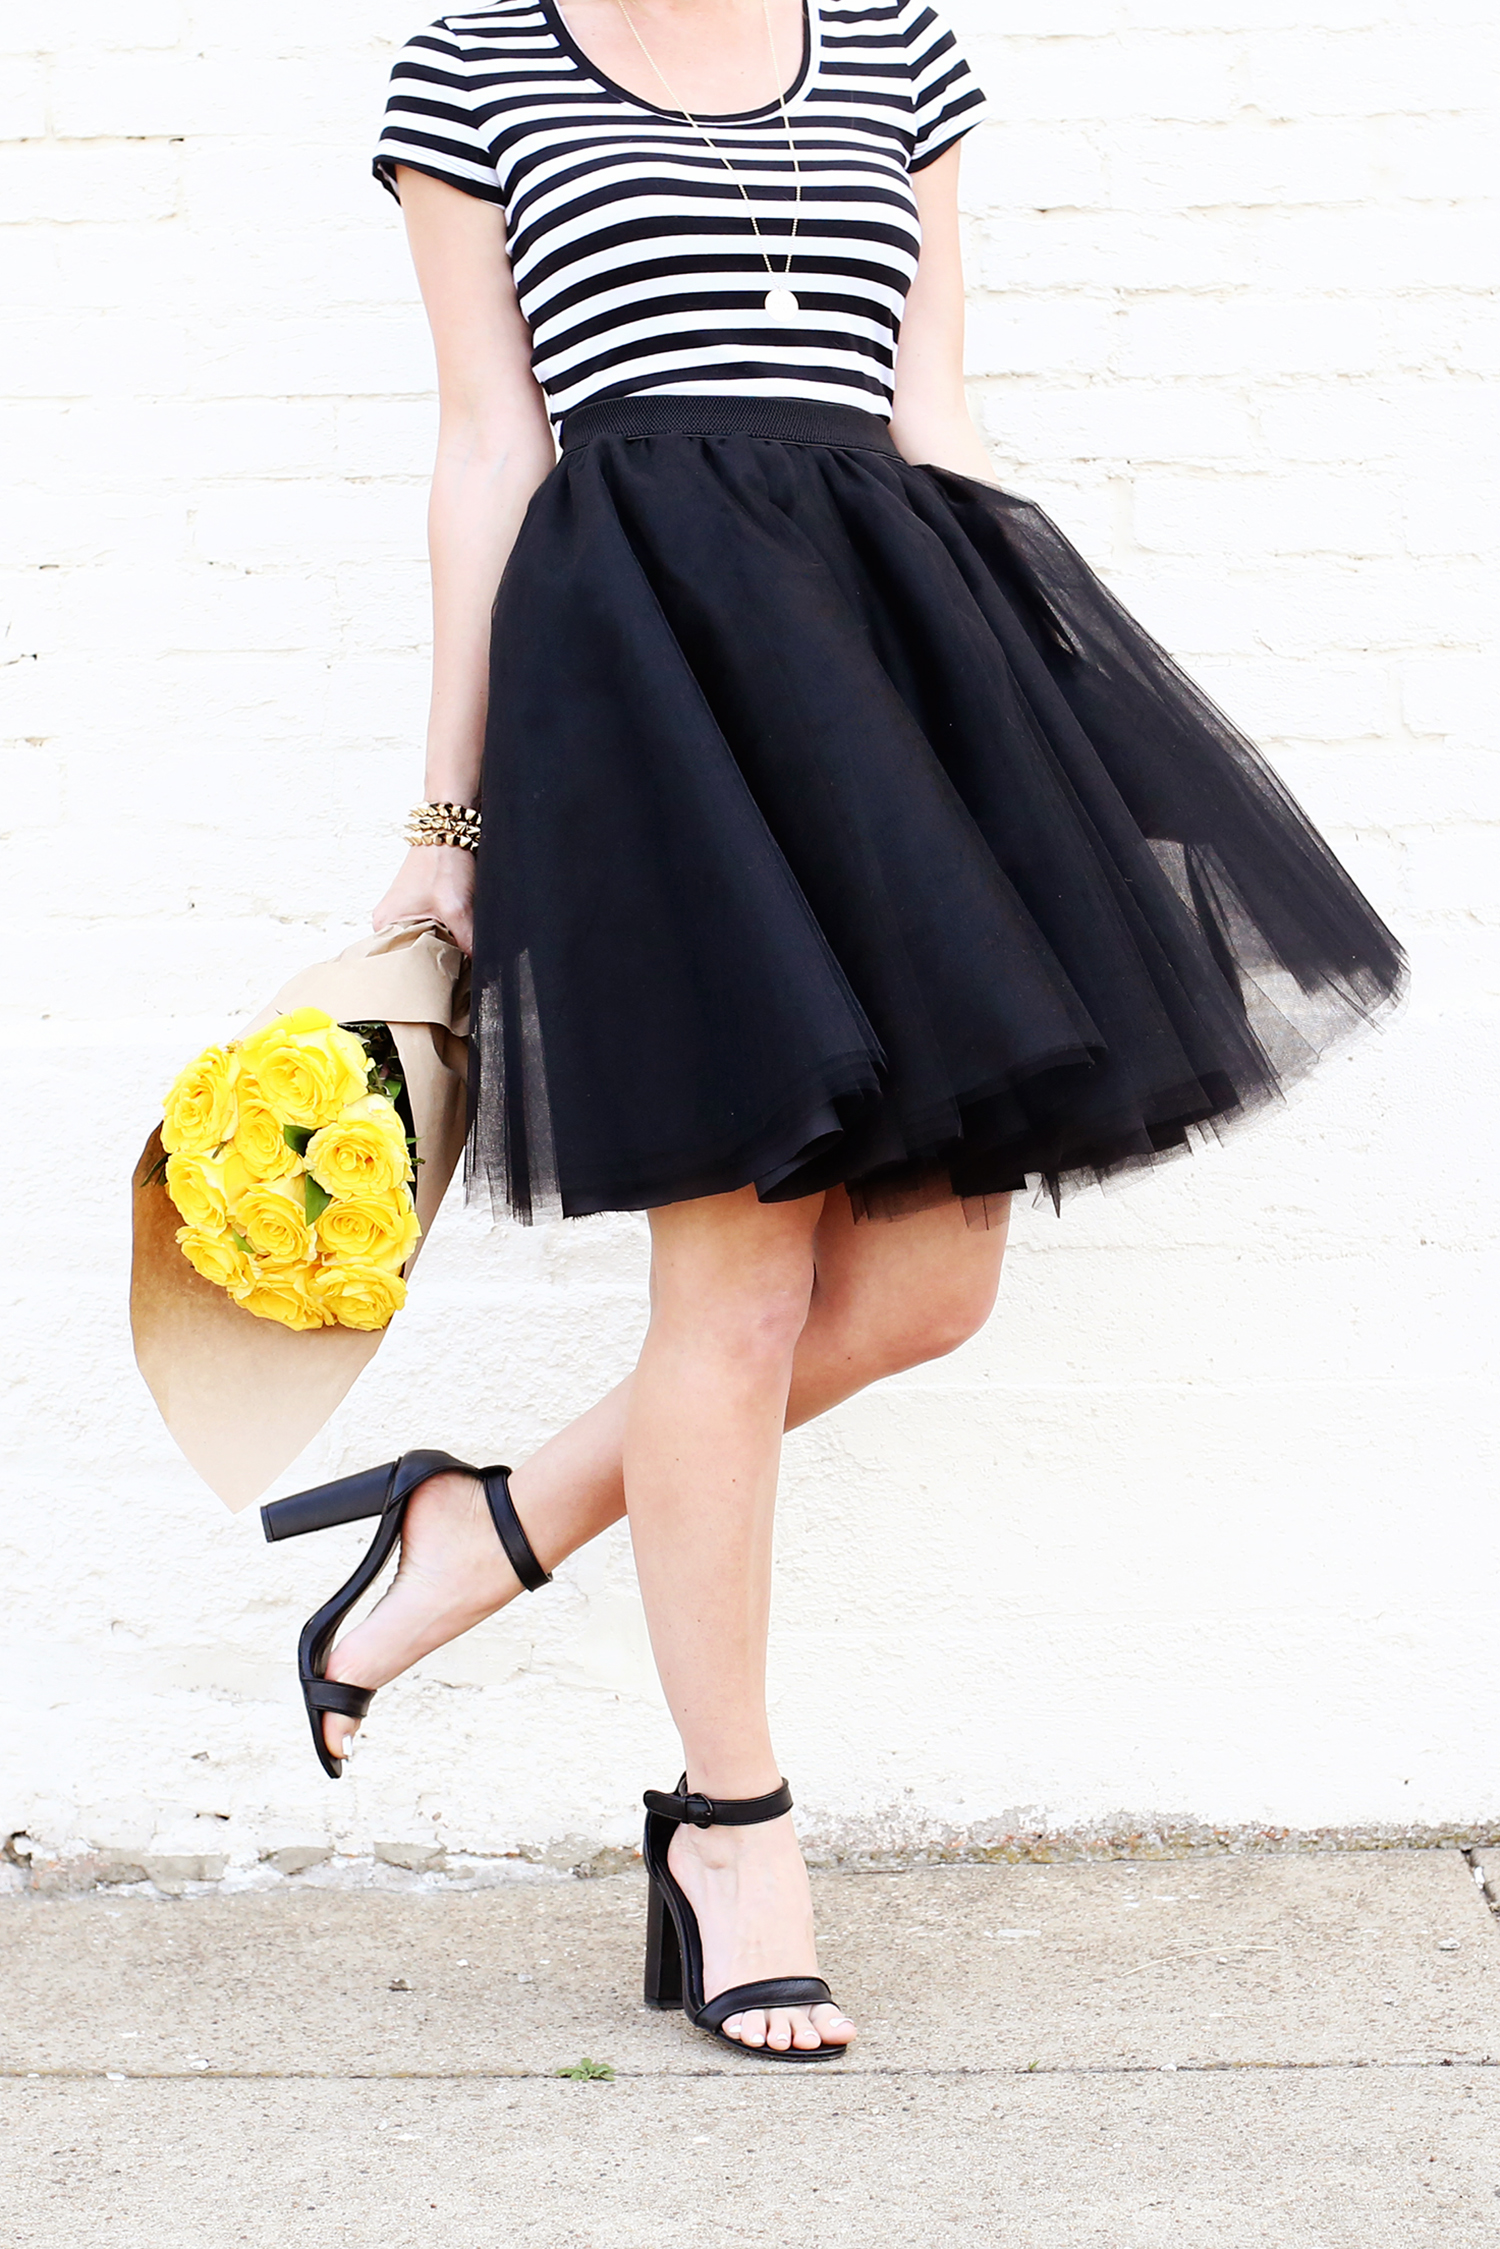 c6735d09d So, I've pretty much had a crush on all the tulle skirts I've been seeing  online for quite sometime now. They are just so flirty and fun, and I love  seeing ...